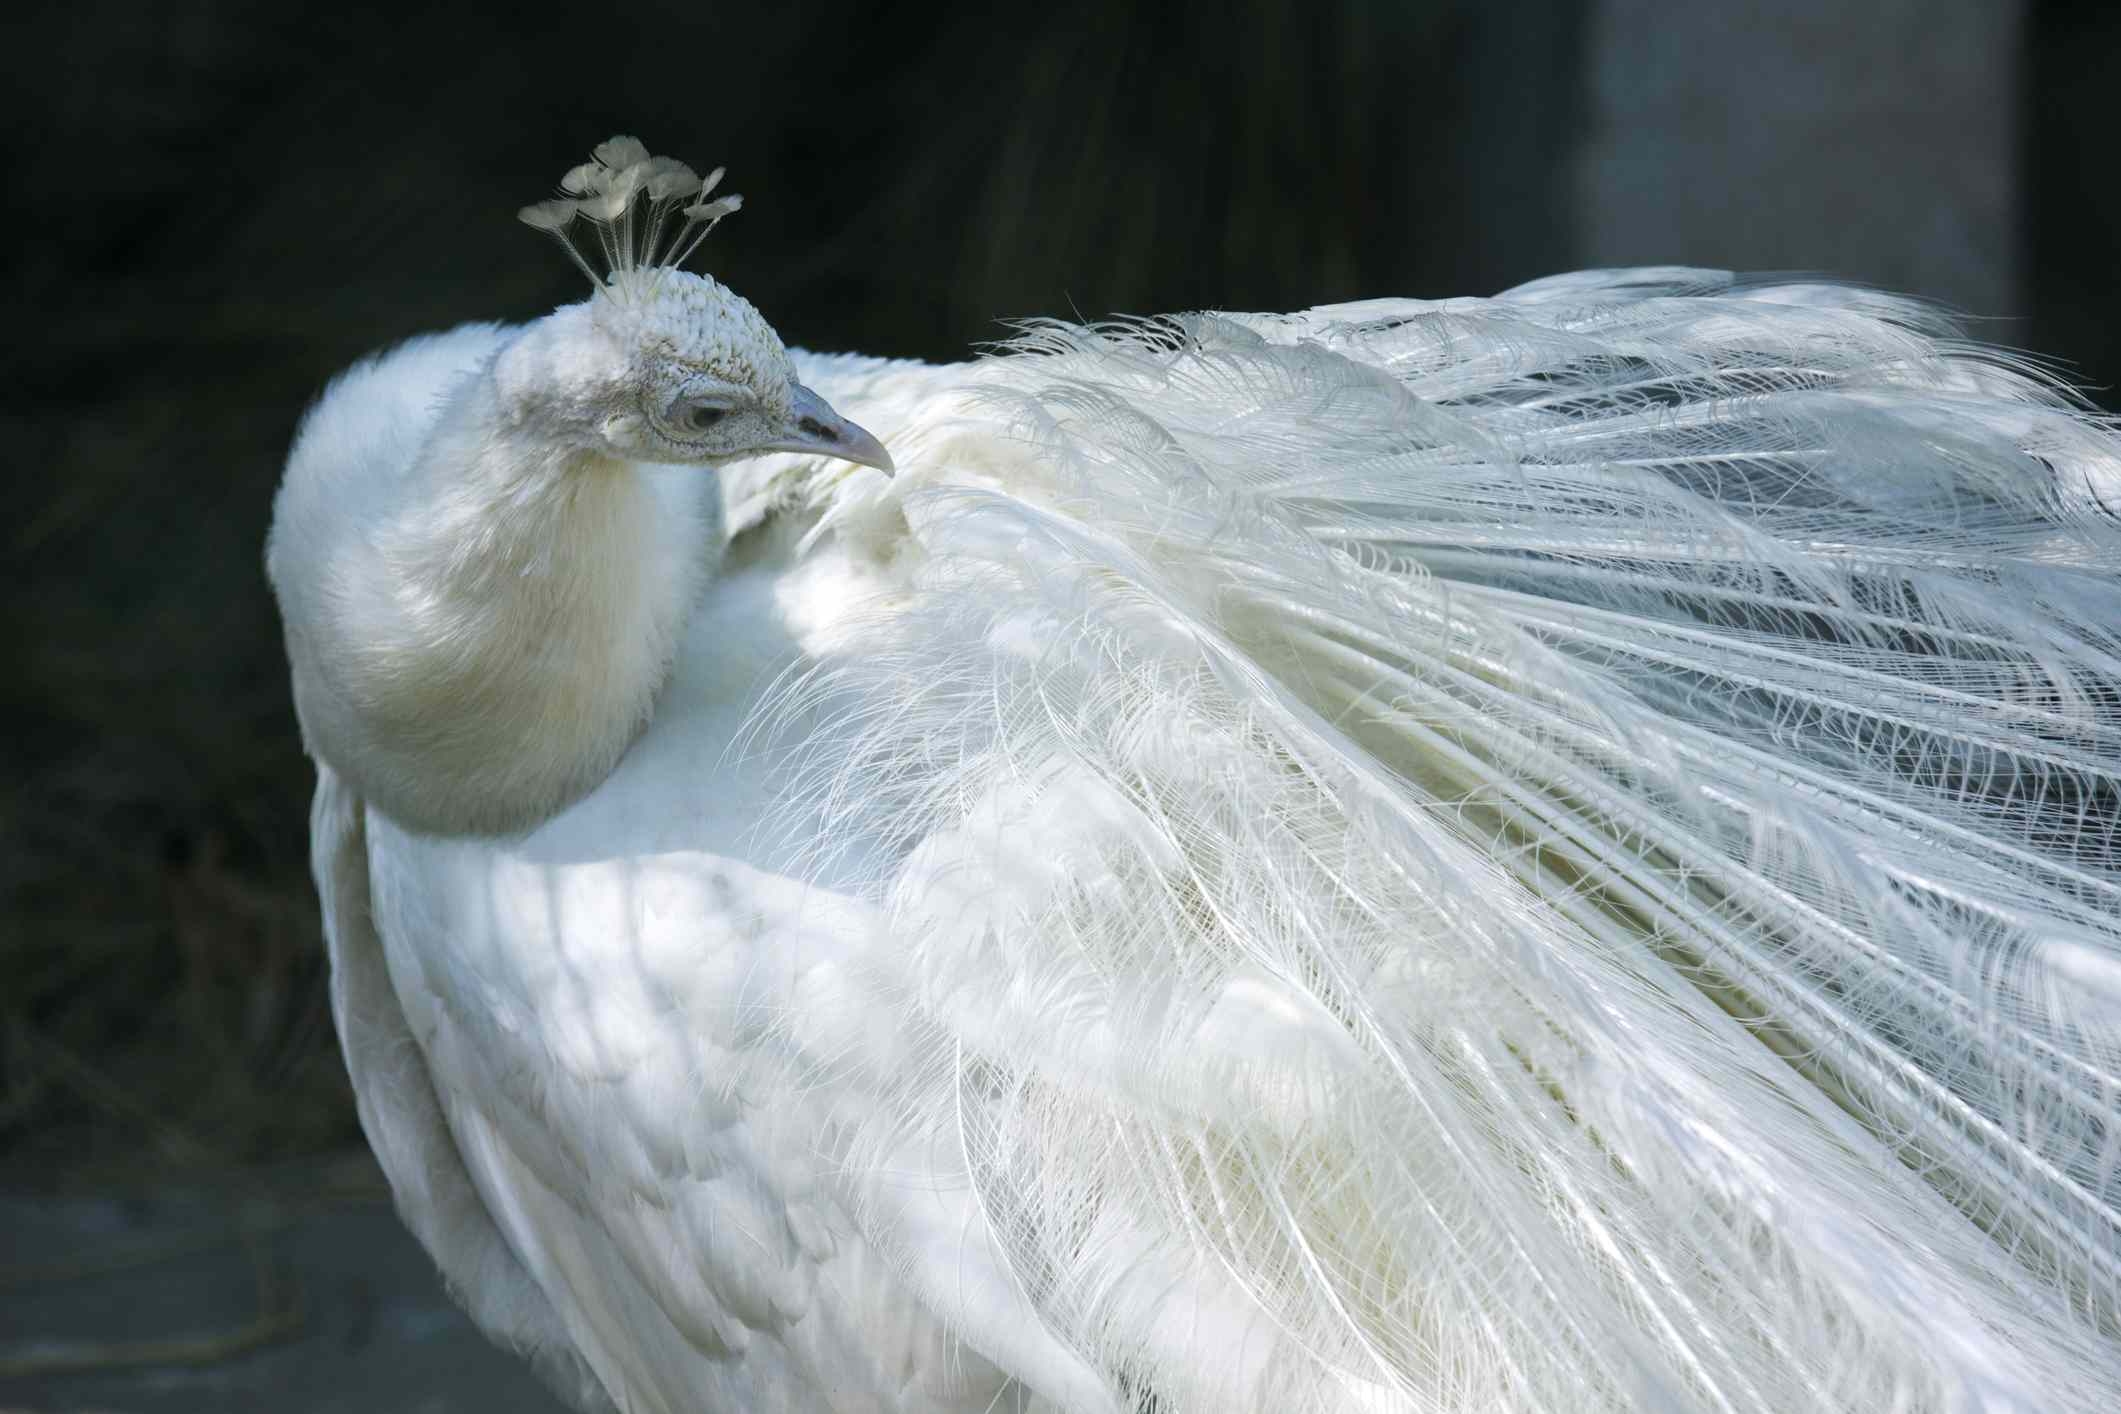 A white Albino peacock with its feathers tucked in.